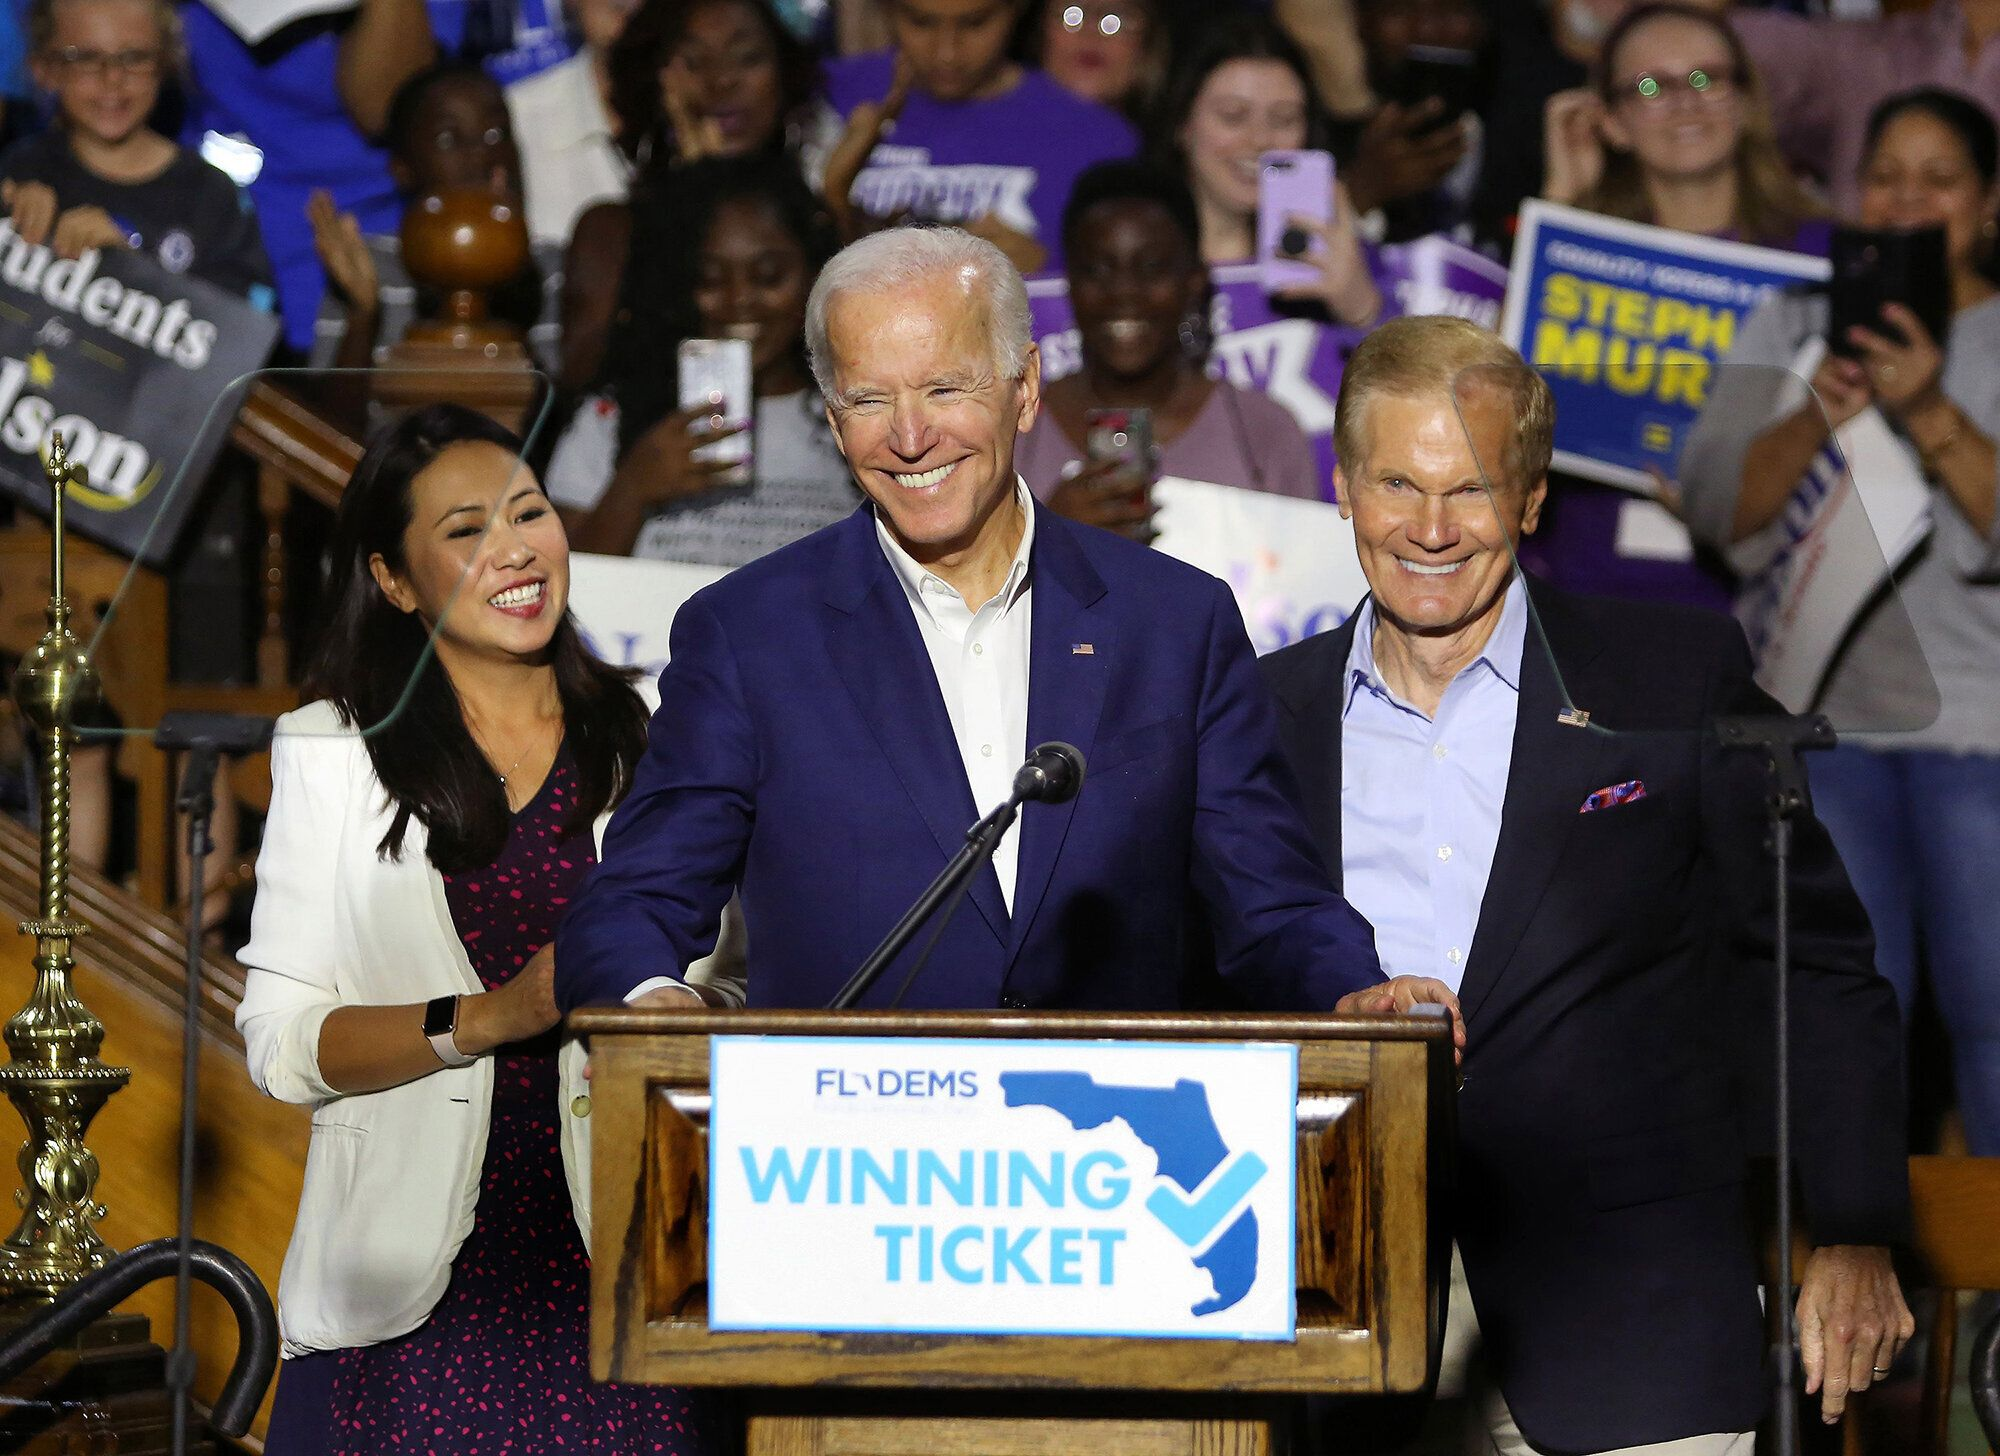 Biden's strategy is informed by Democratic defeats in Florida in 2018, when Sen. Ben Nelson (D) lost his seat as Republican c